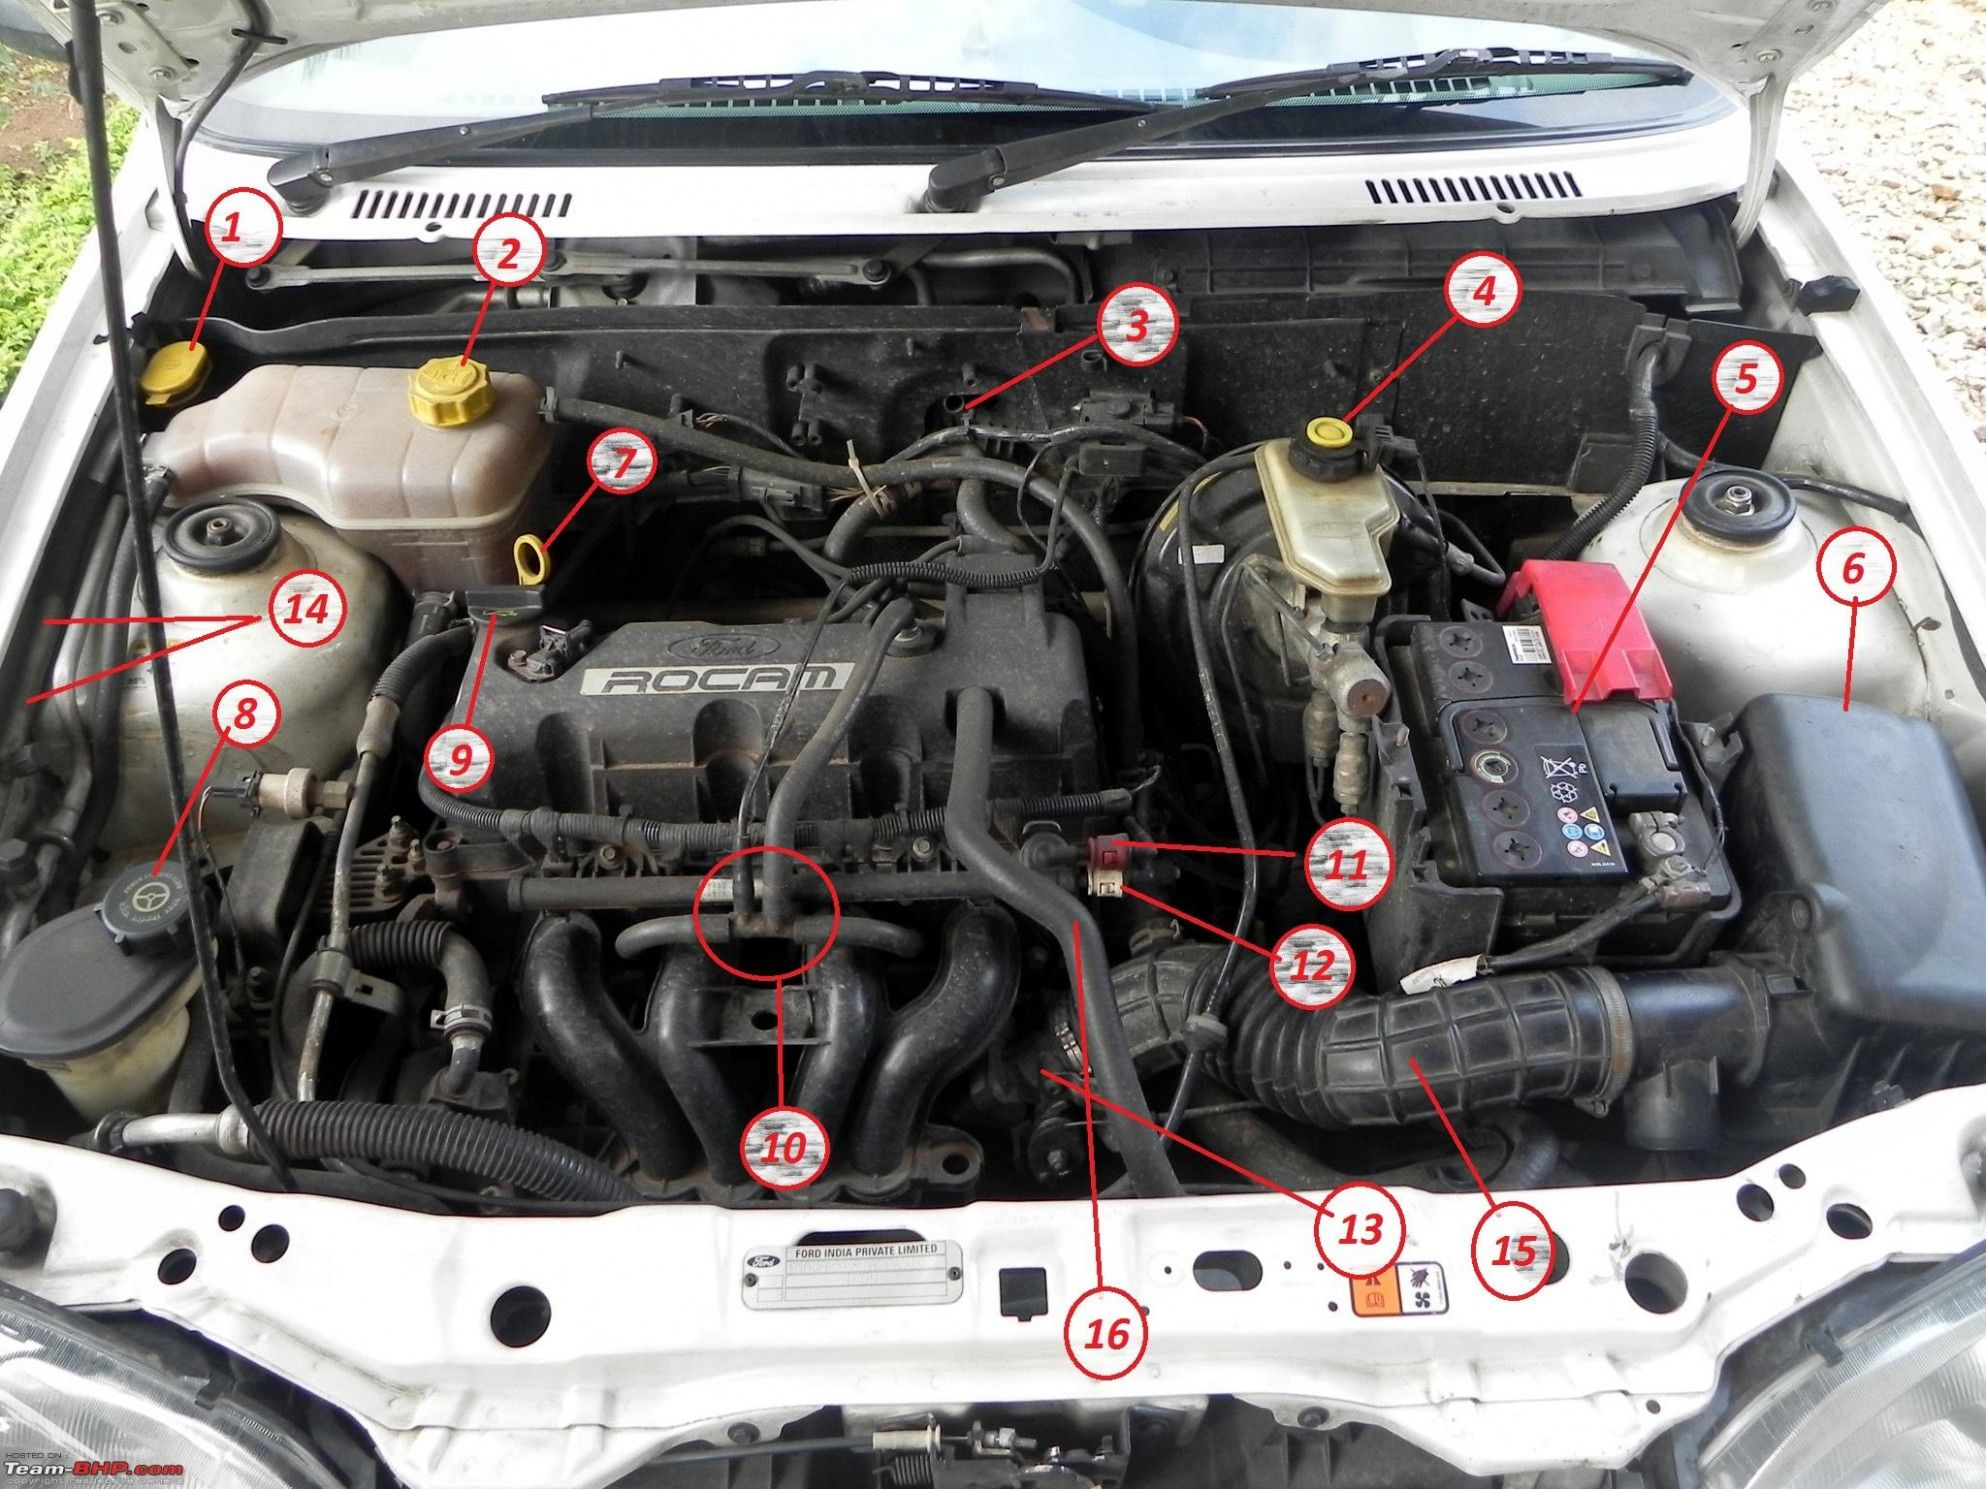 Car Engine Bay Diagram in 2020 | Car engine, Engineering, Buy car onlinePinterest